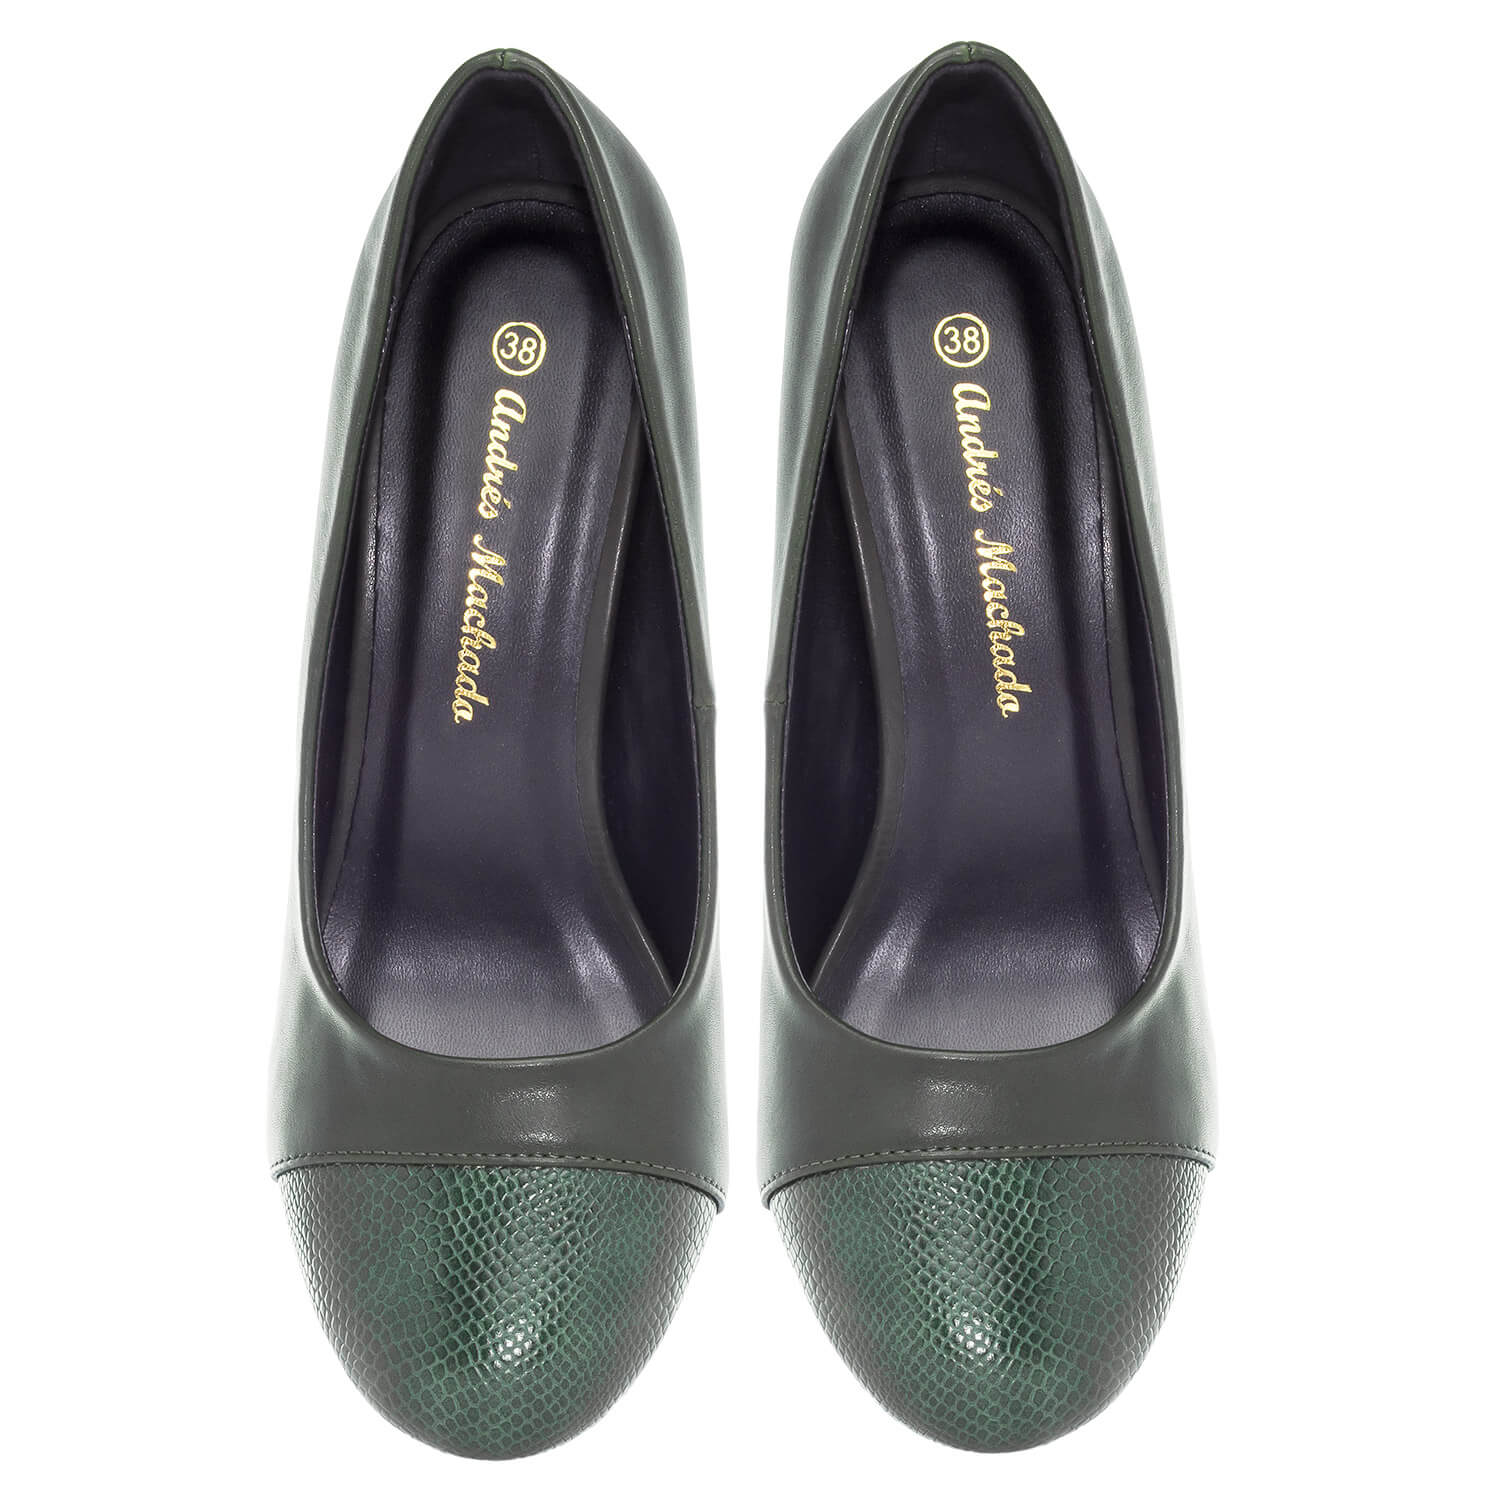 Green faux Leather Pumps